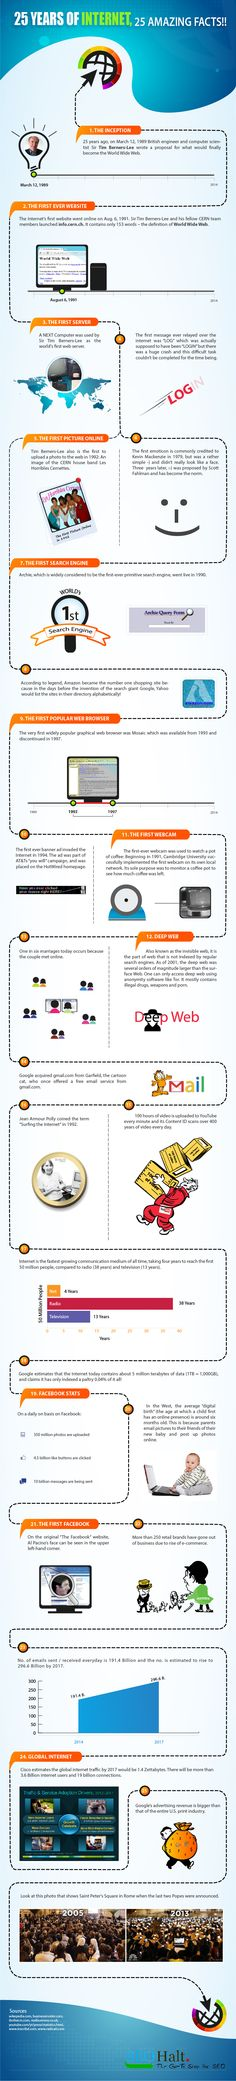 25 Amazing Facts about the Internet [Infographic]